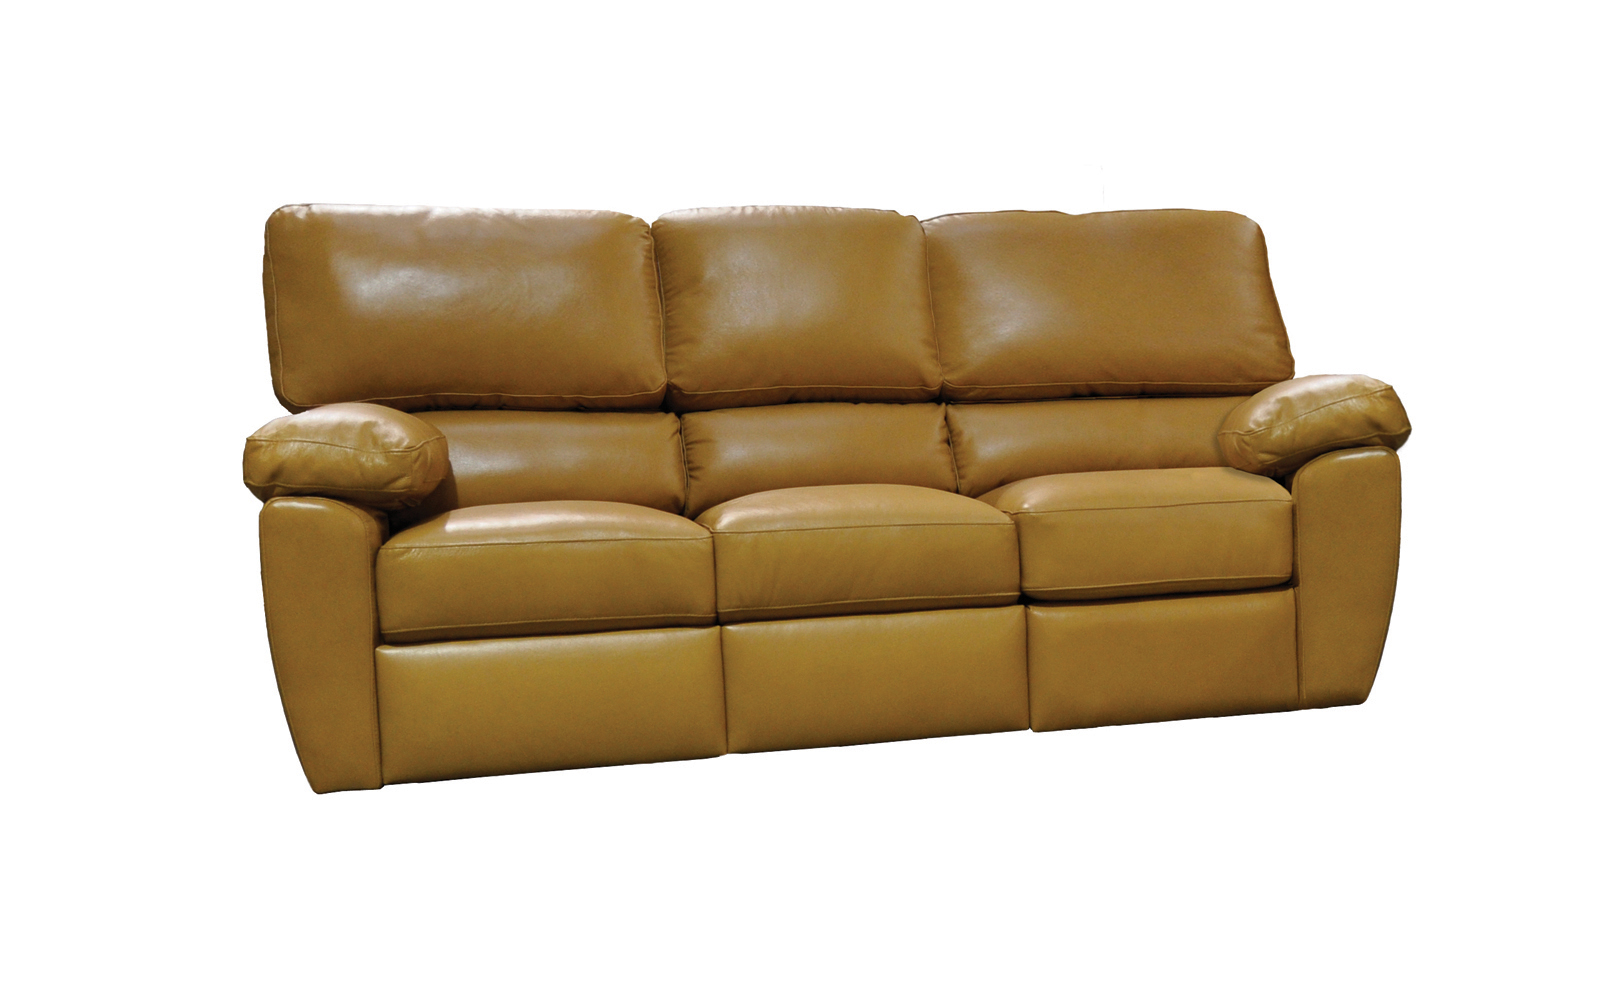 Best reclining sofa under 1000 infosofaco for Leather sectional sofa under 1000